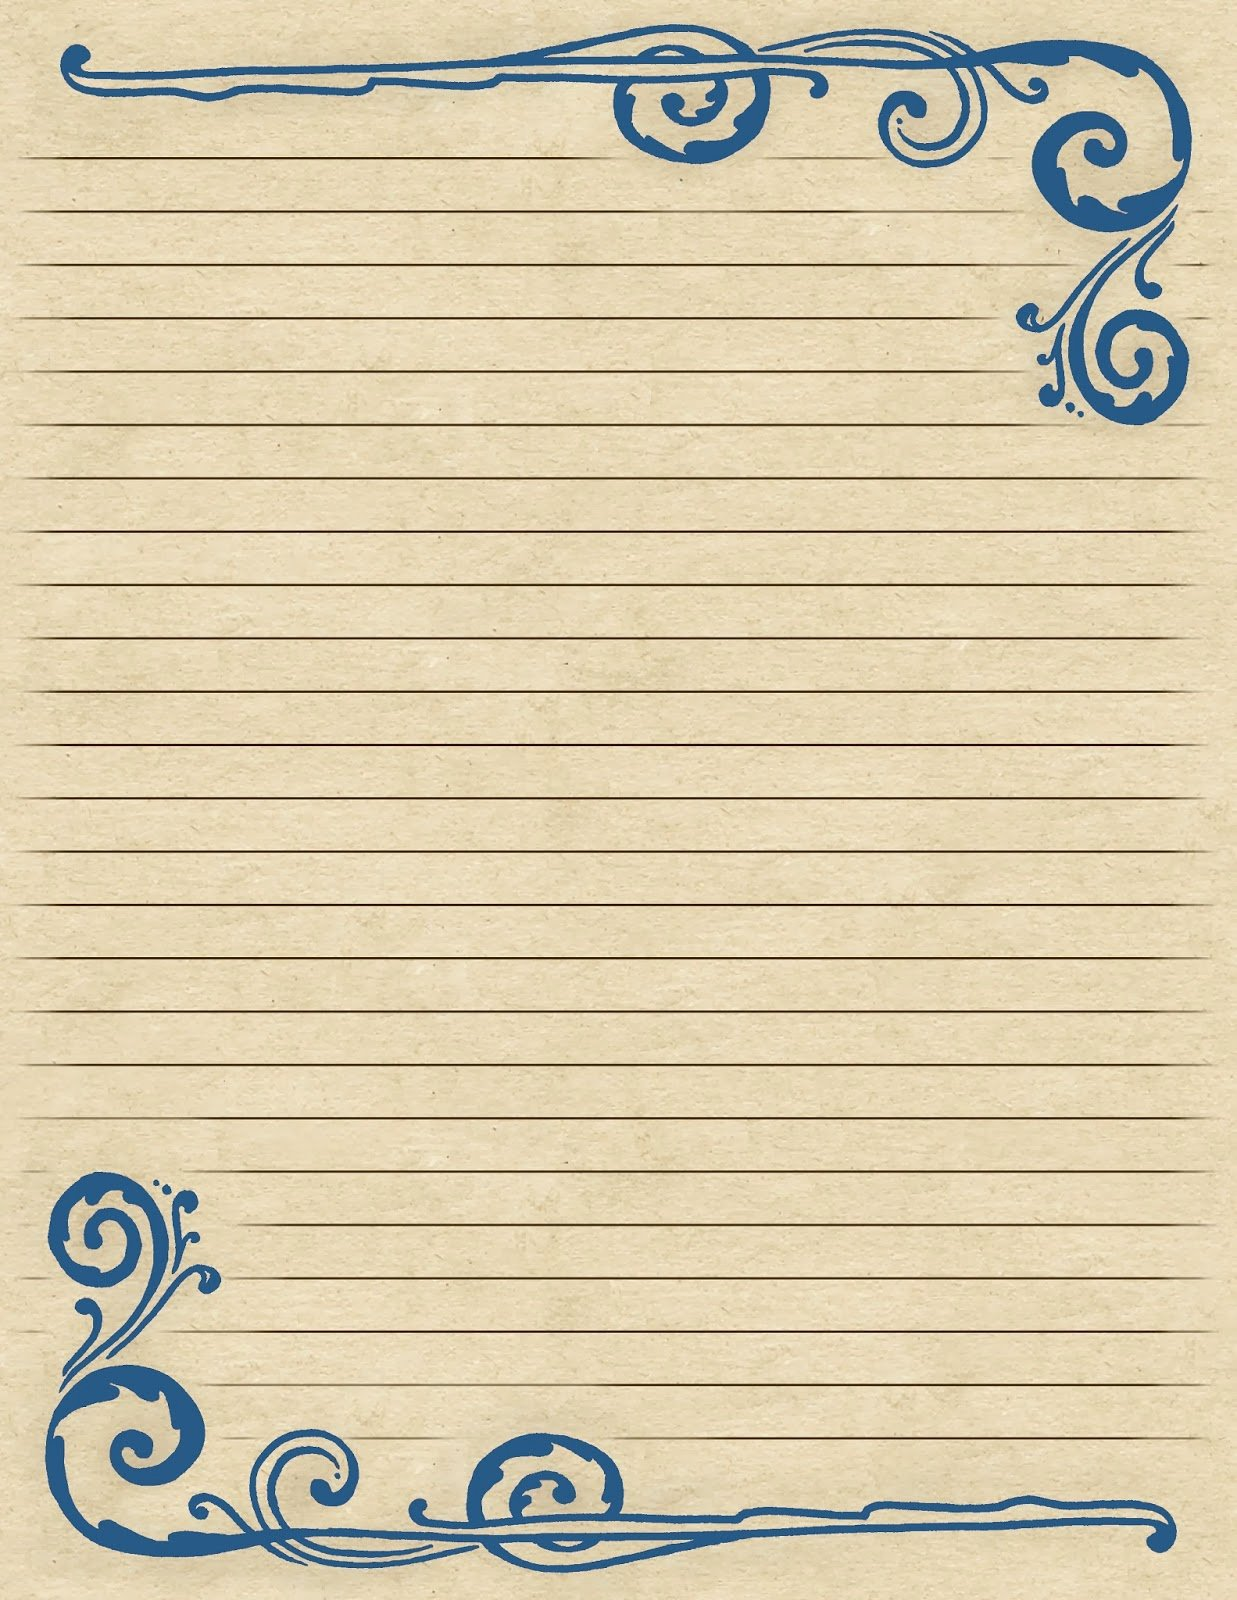 Printable Lined Stationery Paper Lovely Lilac & Lavender Swirling Border & Lined Paper